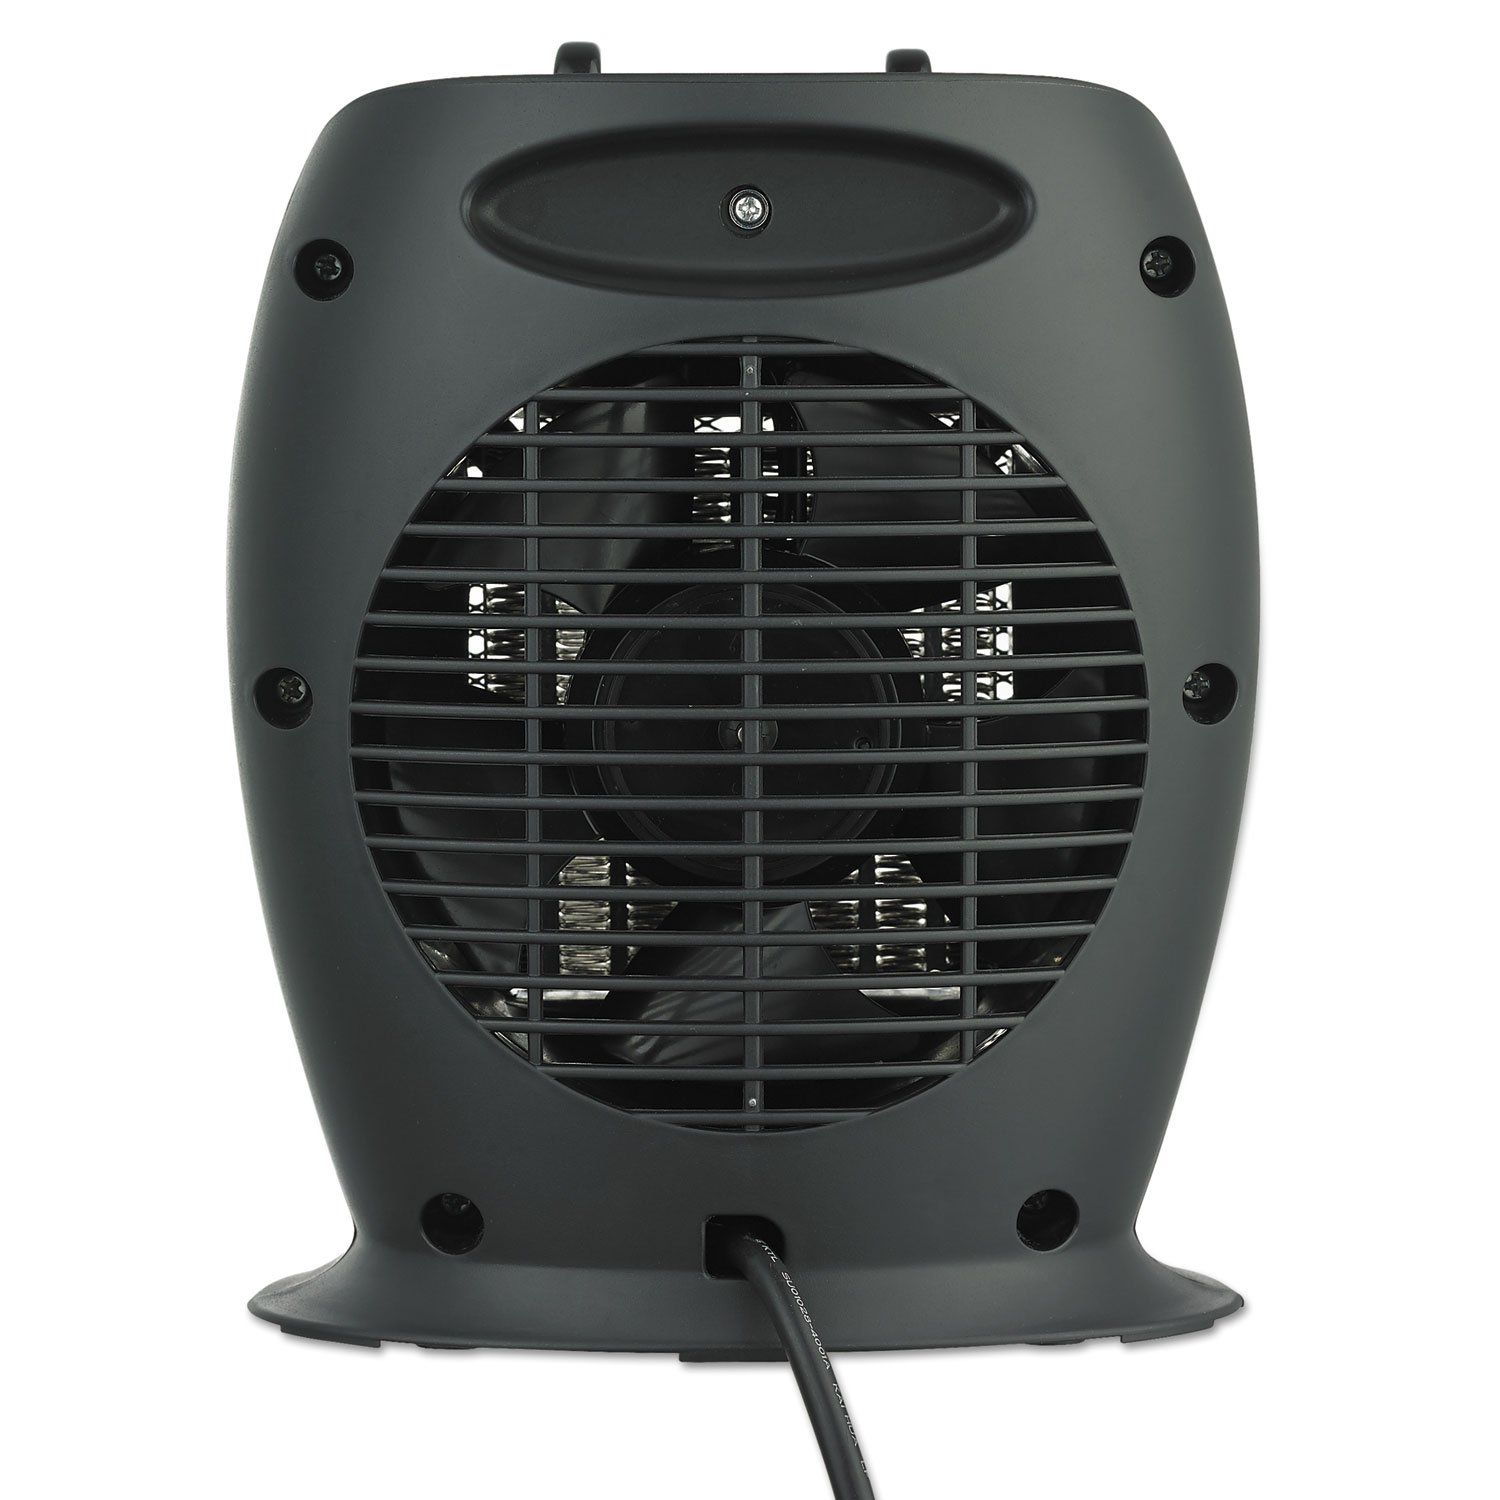 Alera Hech09 Ceramic Heater 7 1 8w X 5 7 8d X 8 3 4h Black You Can Get More Details By Clicking On The Image This Is An Ceramic Heater Alera Space Heaters